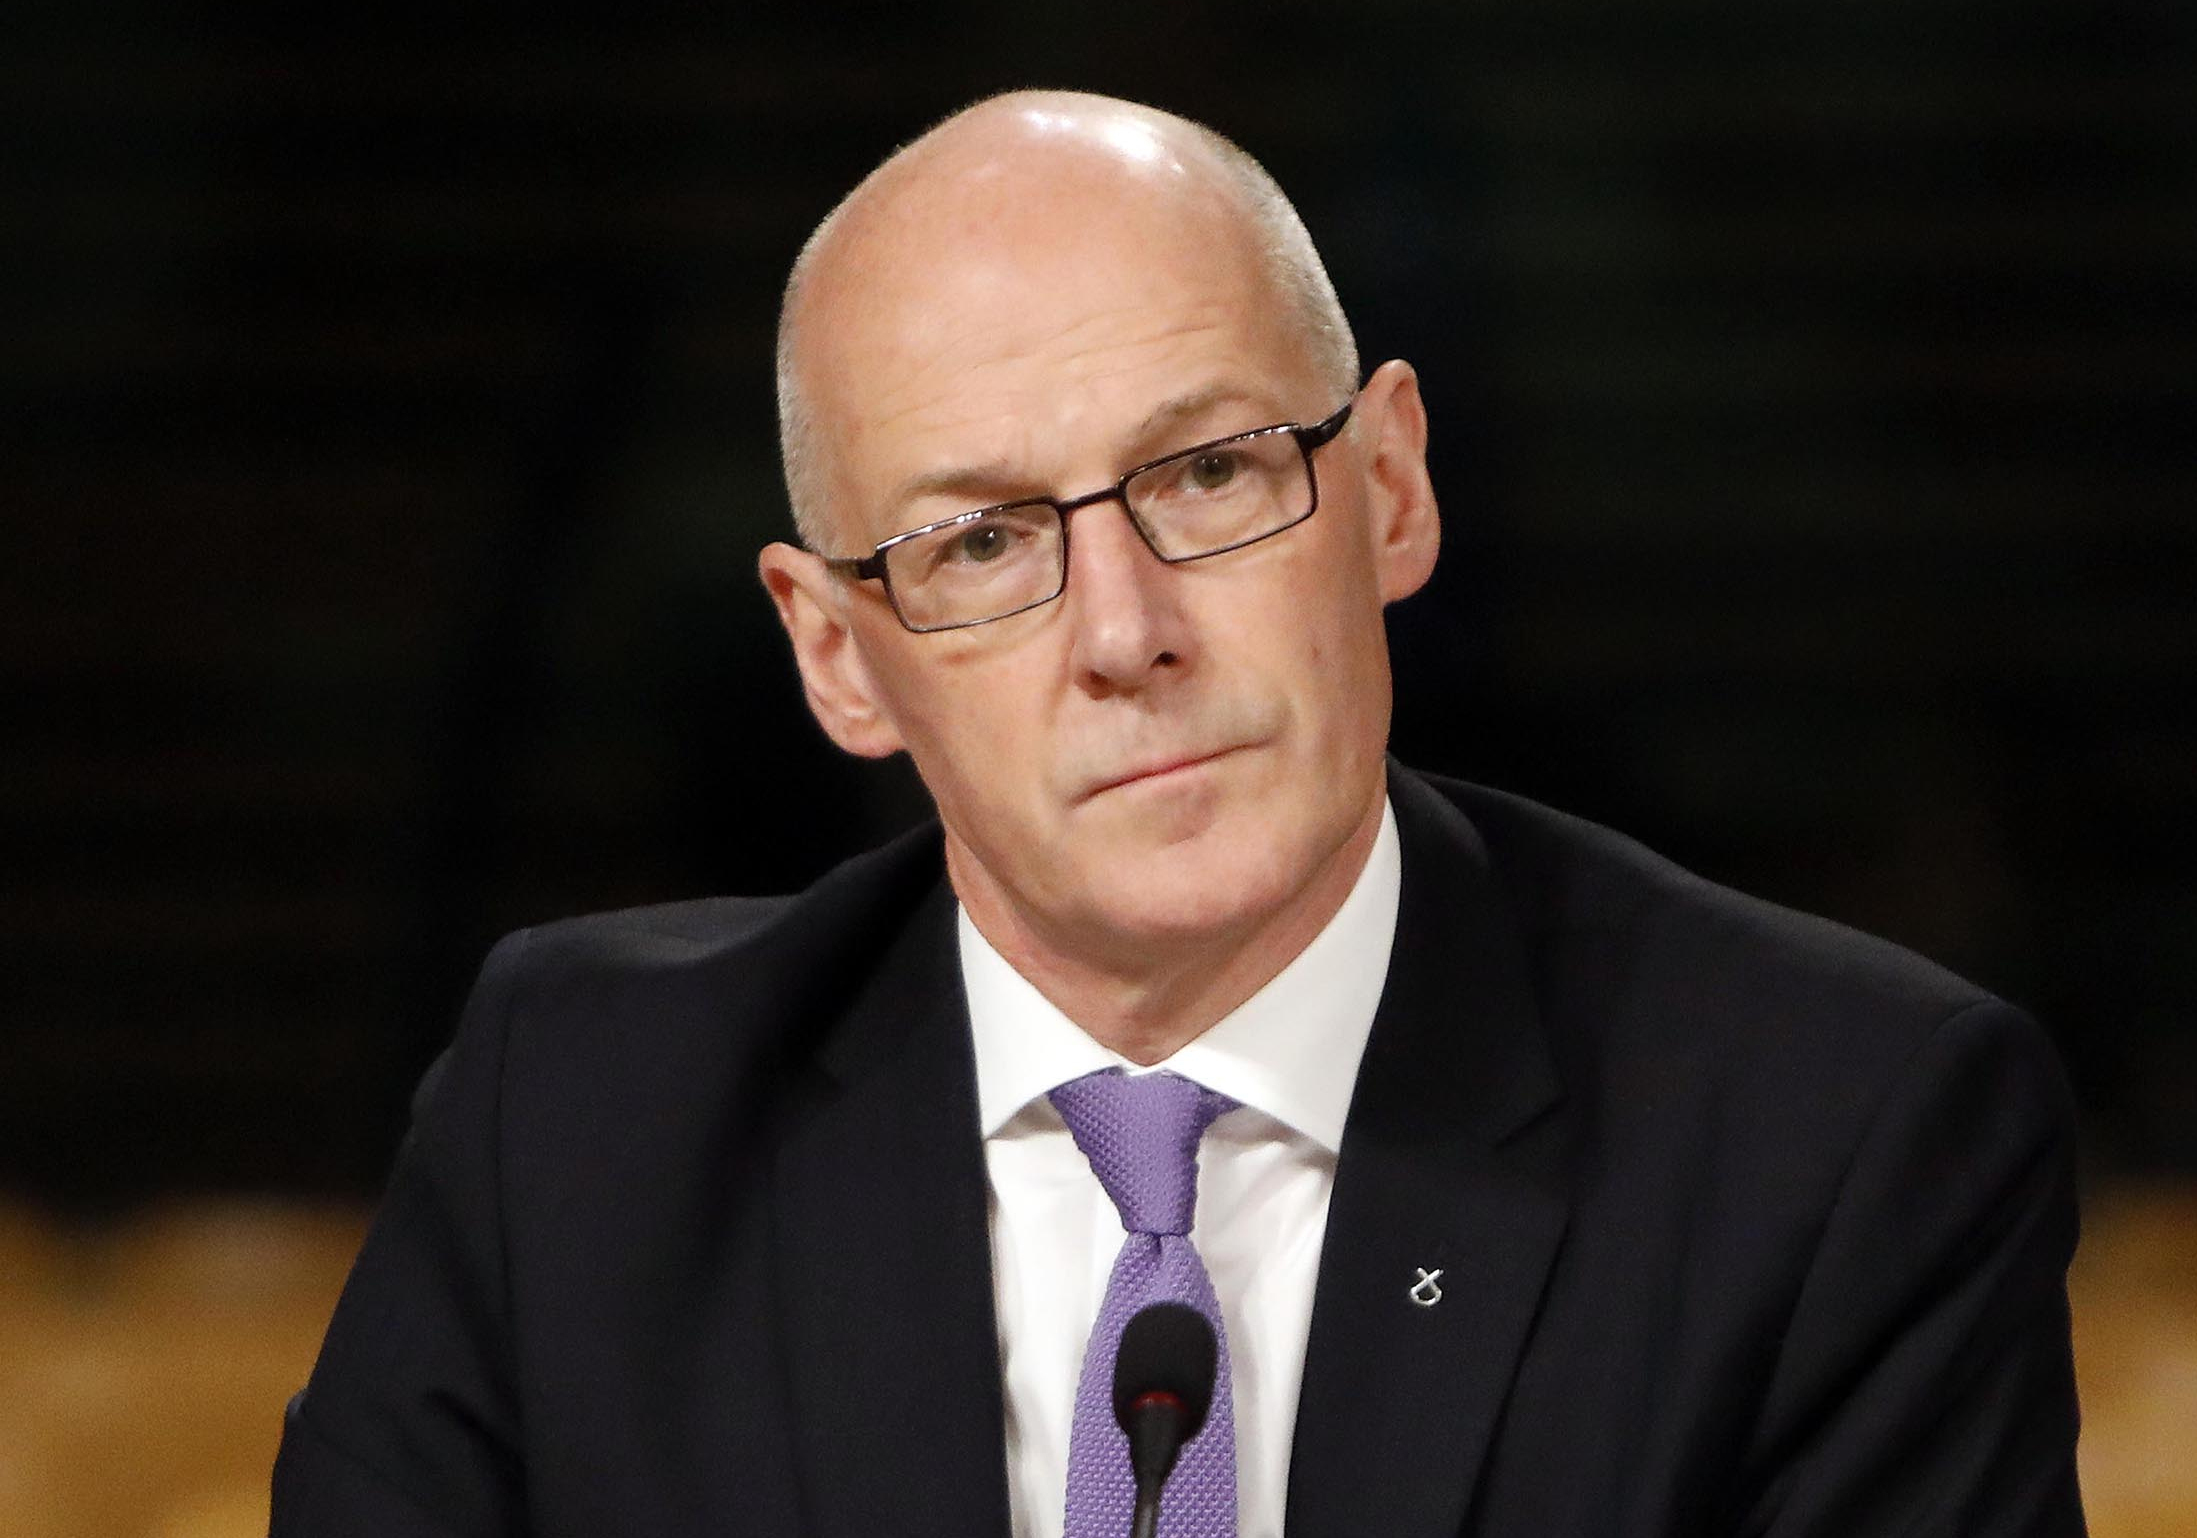 John Swinney's own International Council of Education Advisers has issued 'cautionary advice' to abandon plans to legislate